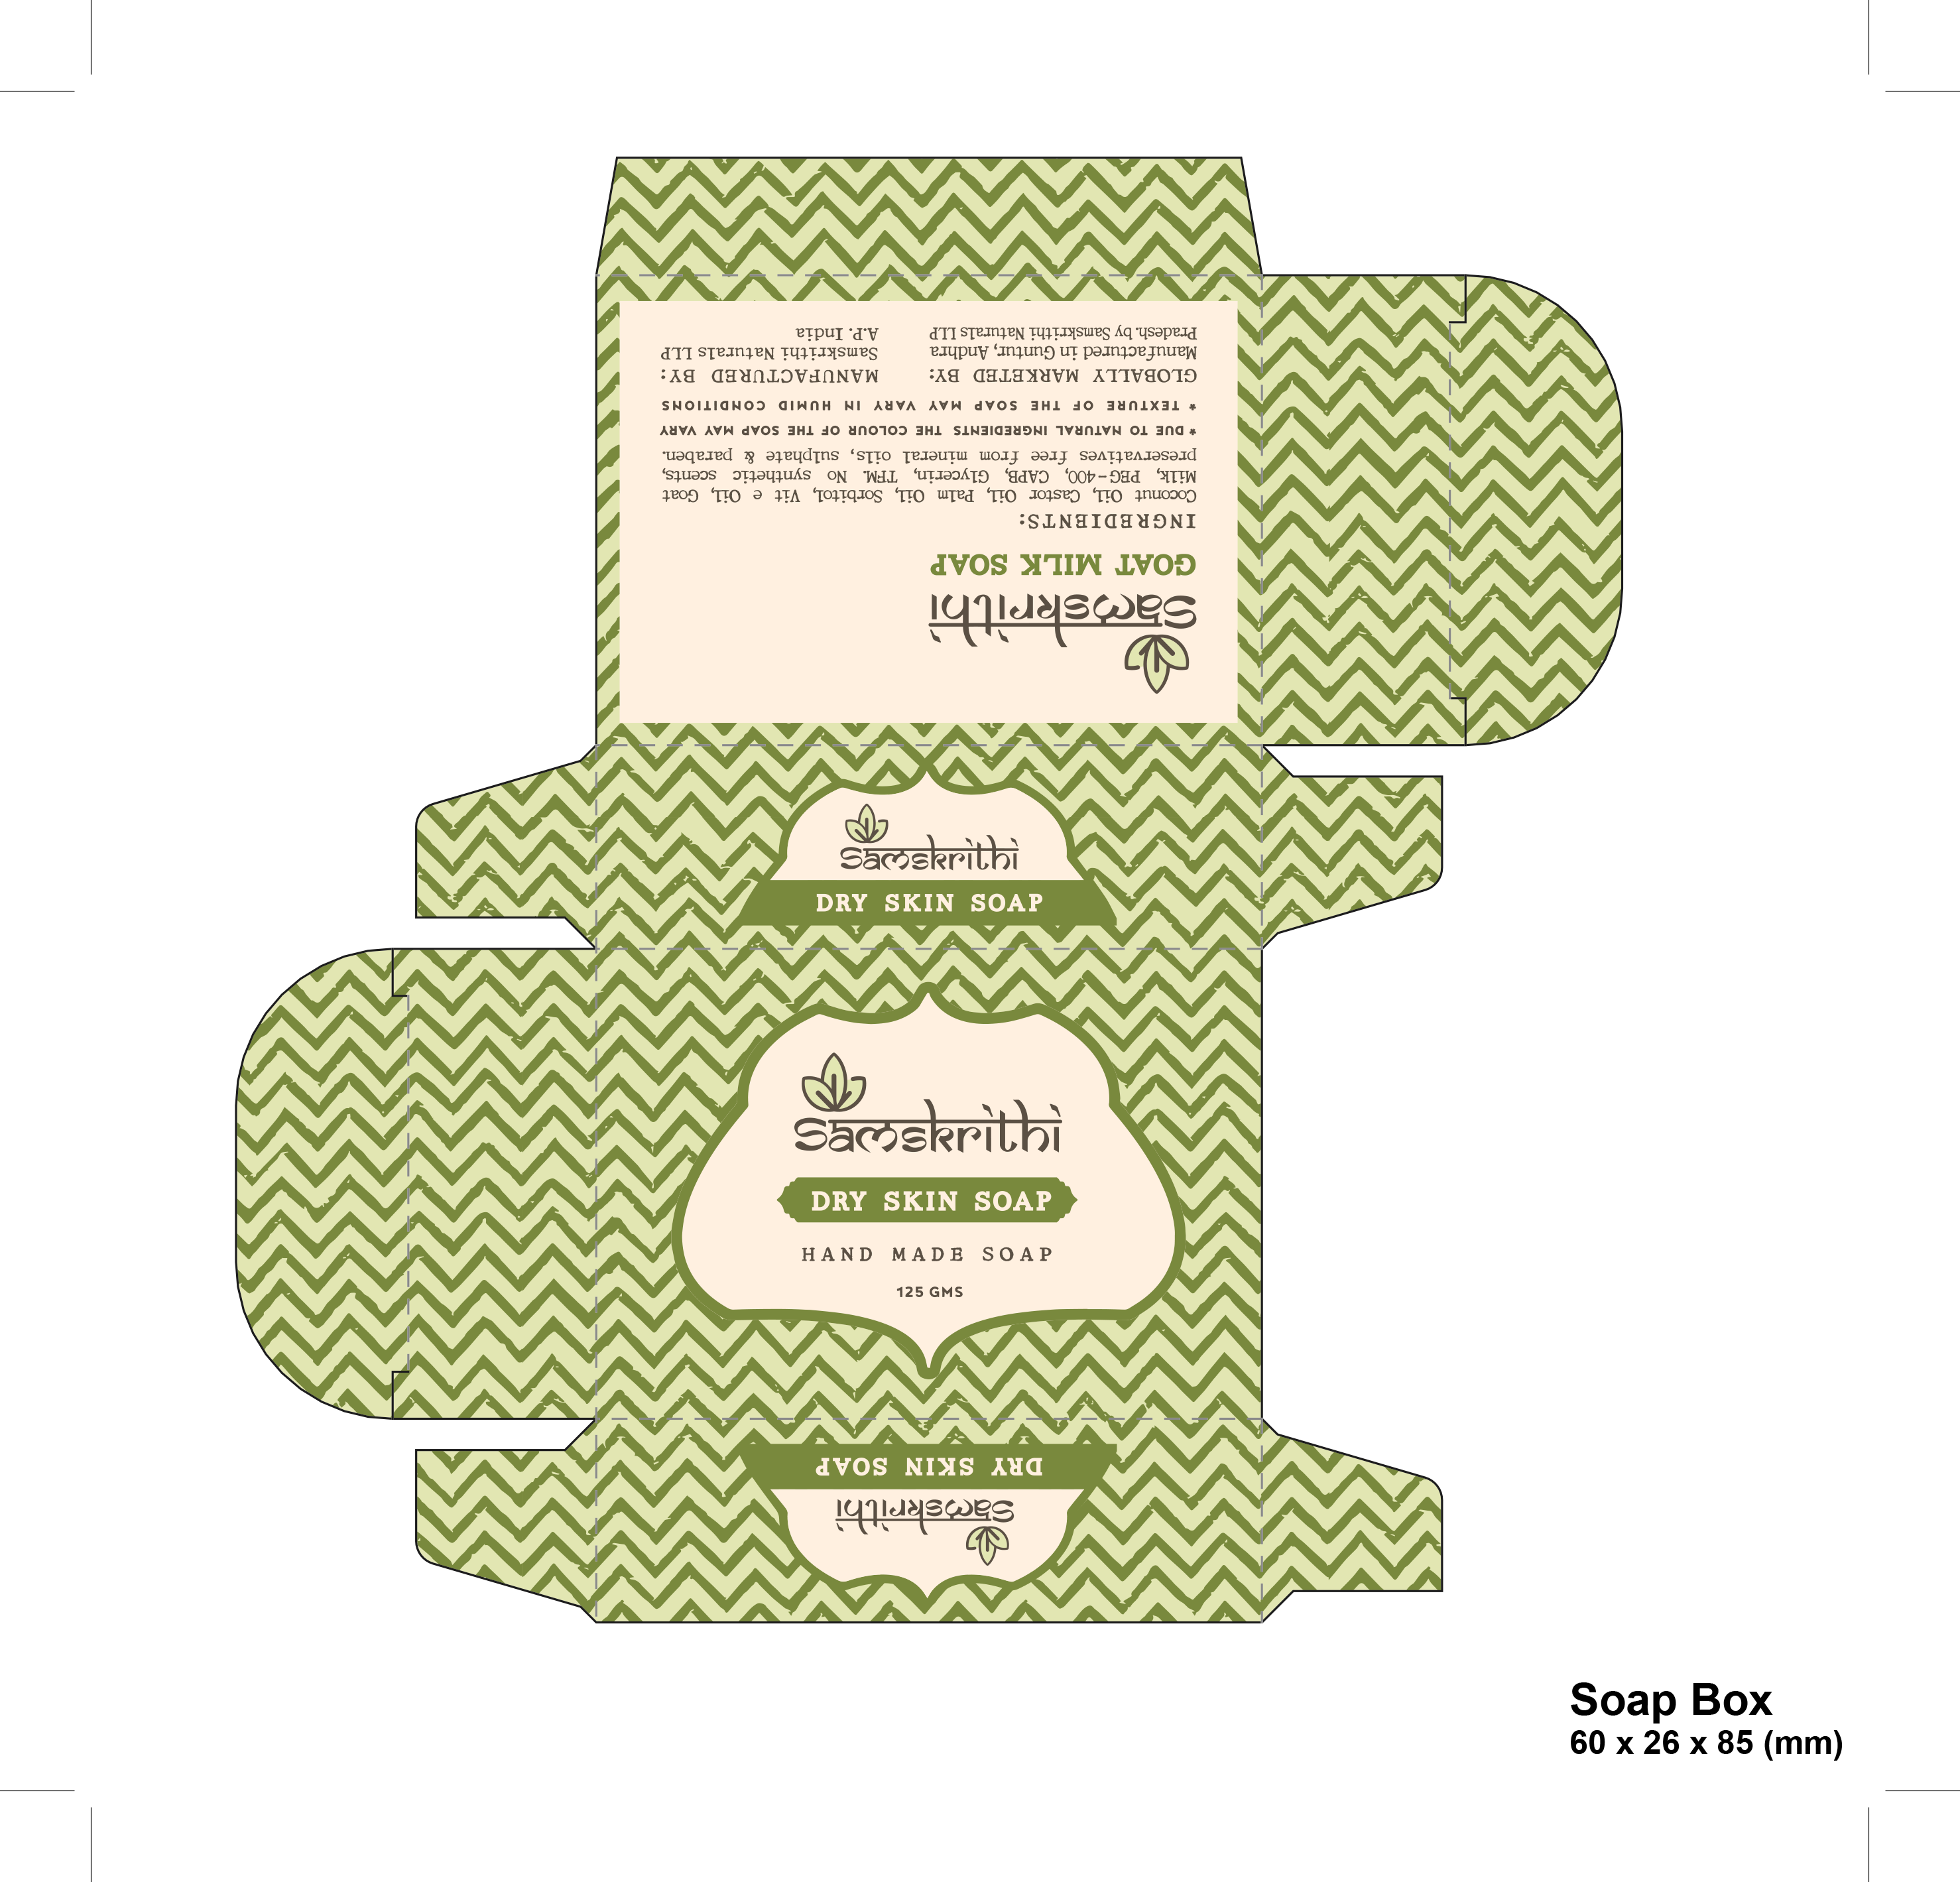 Improving incomplete design for soap label and package